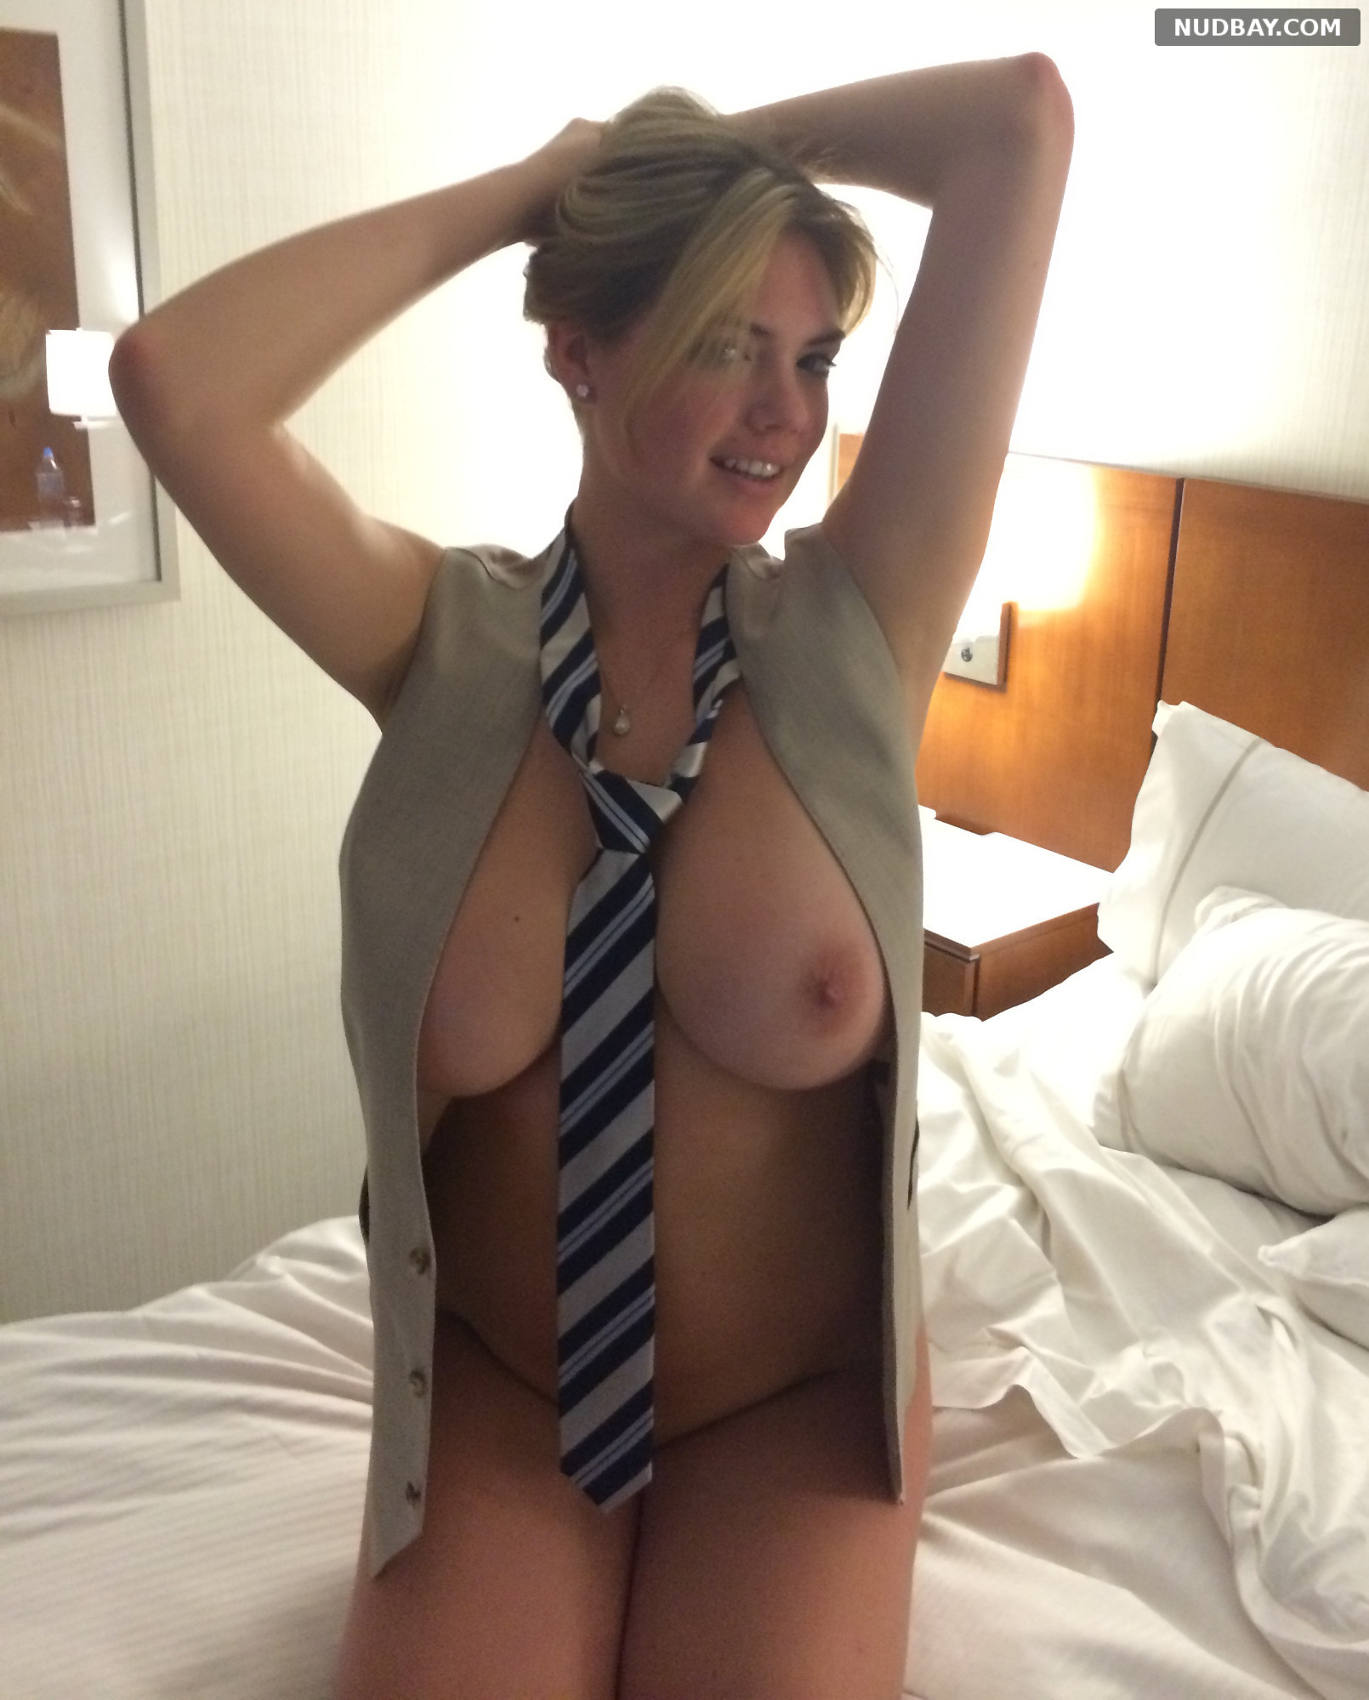 Kate Upton naked on the bed in a tie